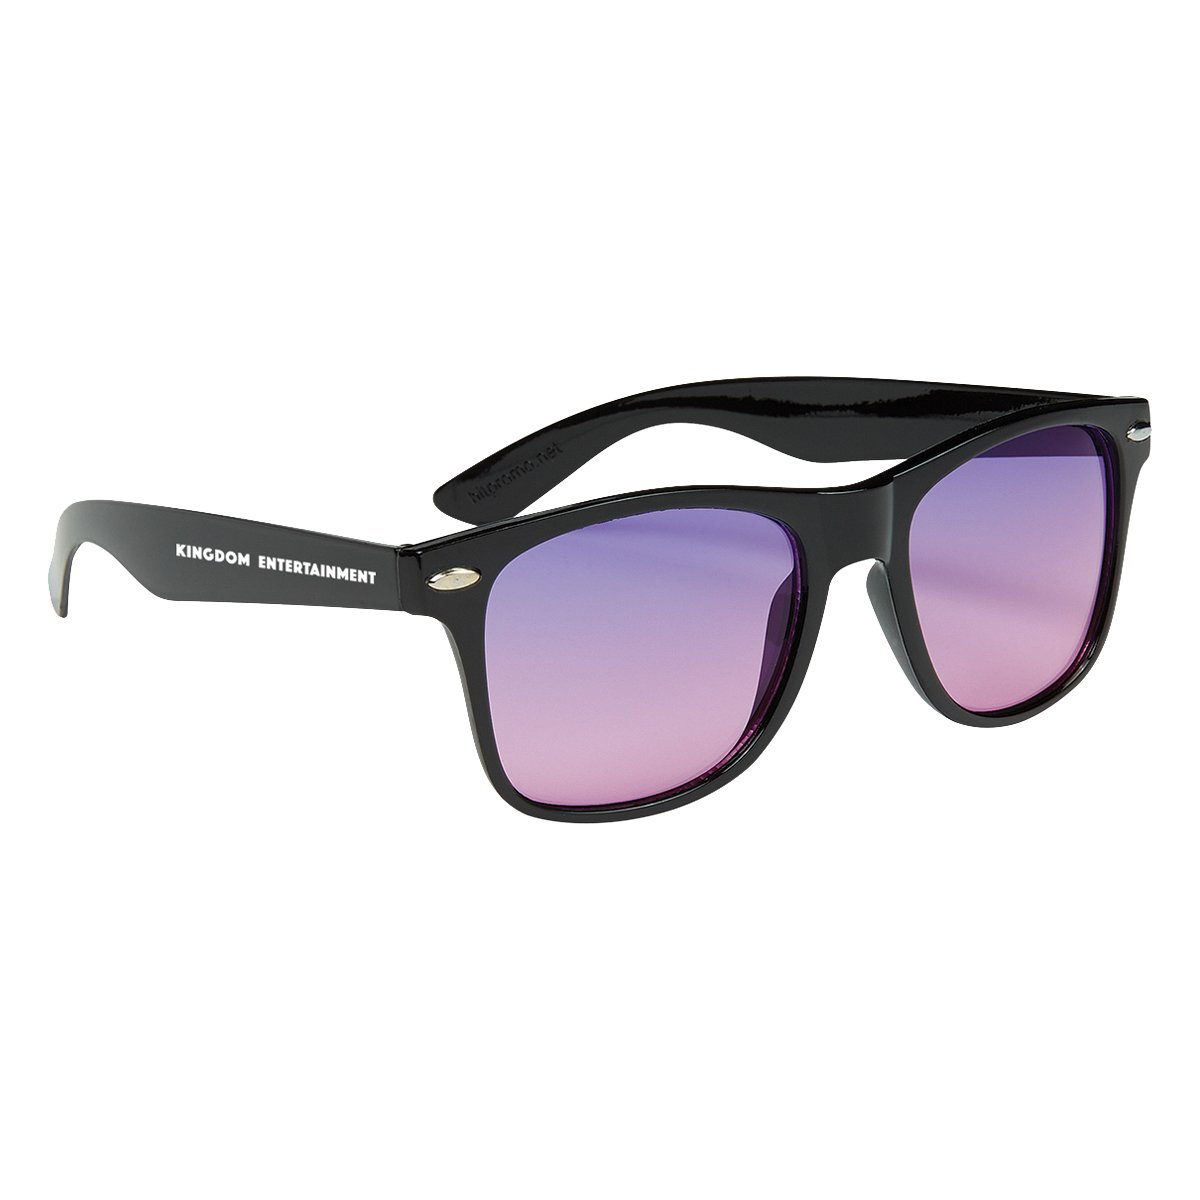 631d93b443 Custom Malibu Sunglasses wth Gradient Color Lenses